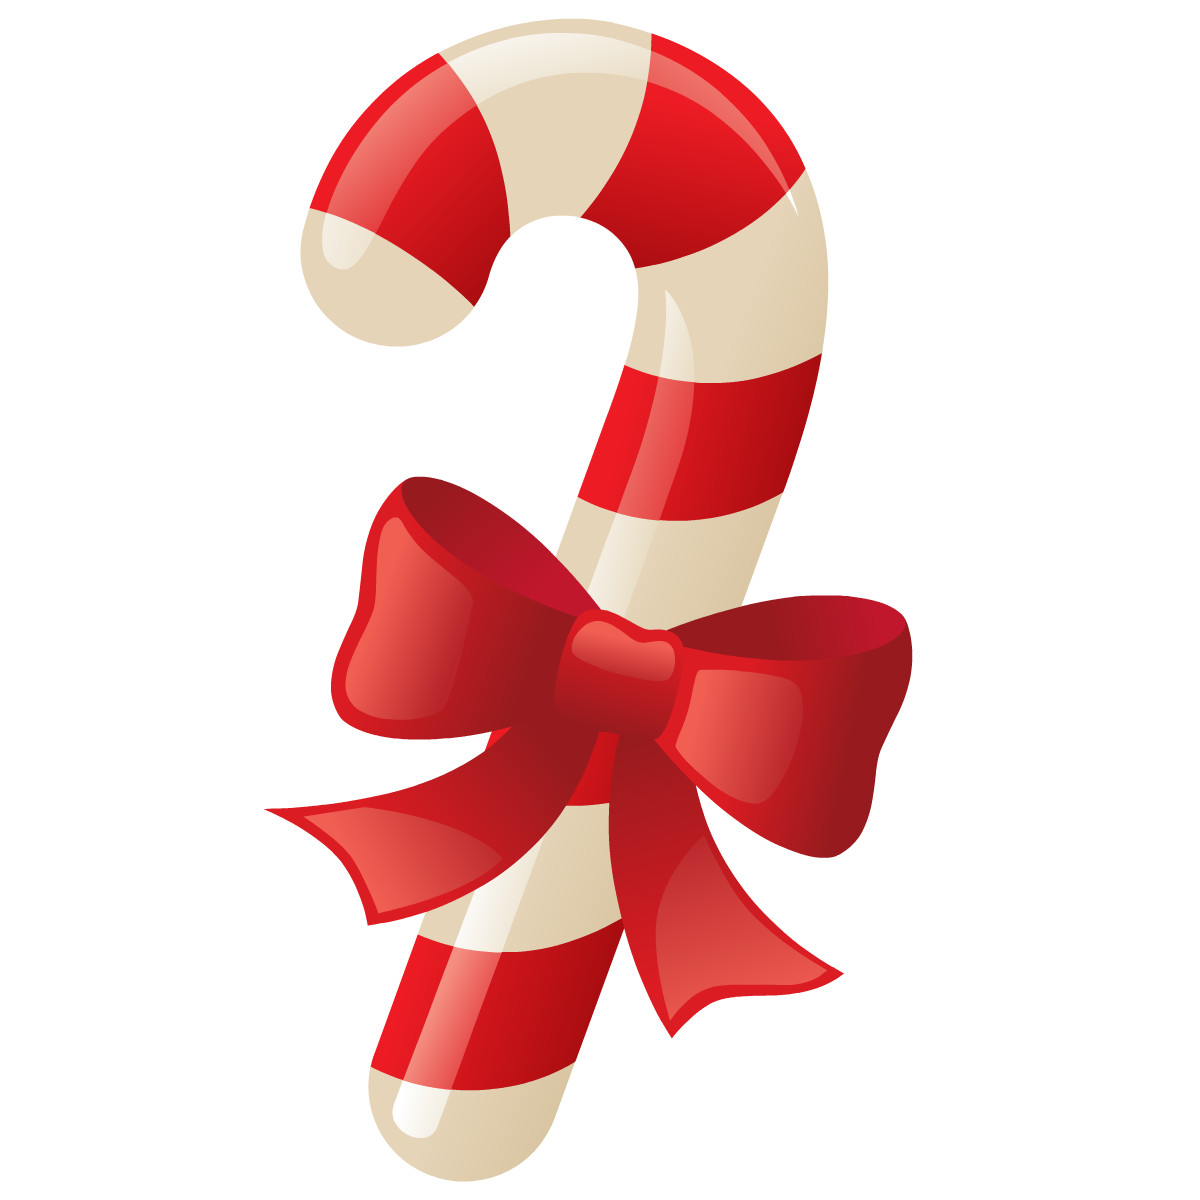 Candy Cane Christmas  Candy Grams on Sale 12 1 12 2 12 8 and 12 9